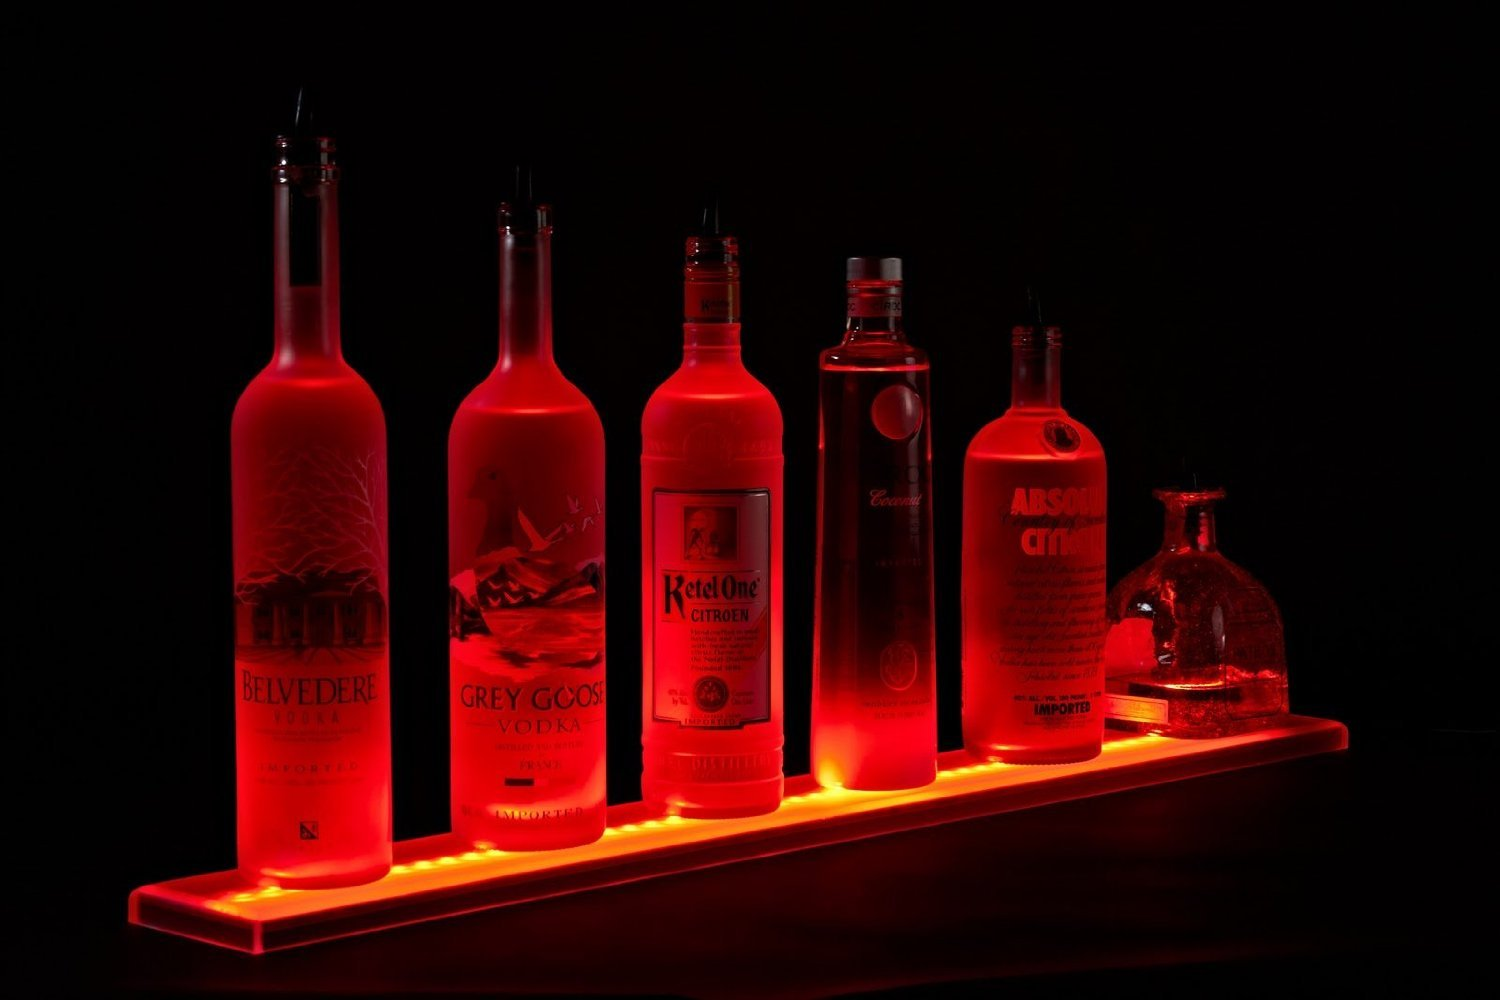 LED Liquor Shelf and Bottle Display (3 ft Length) - Programmable Shelving Includes Wireless Remote and Power Supply - COMFORTABLY HOLDS 7 - 9 BOTTLES